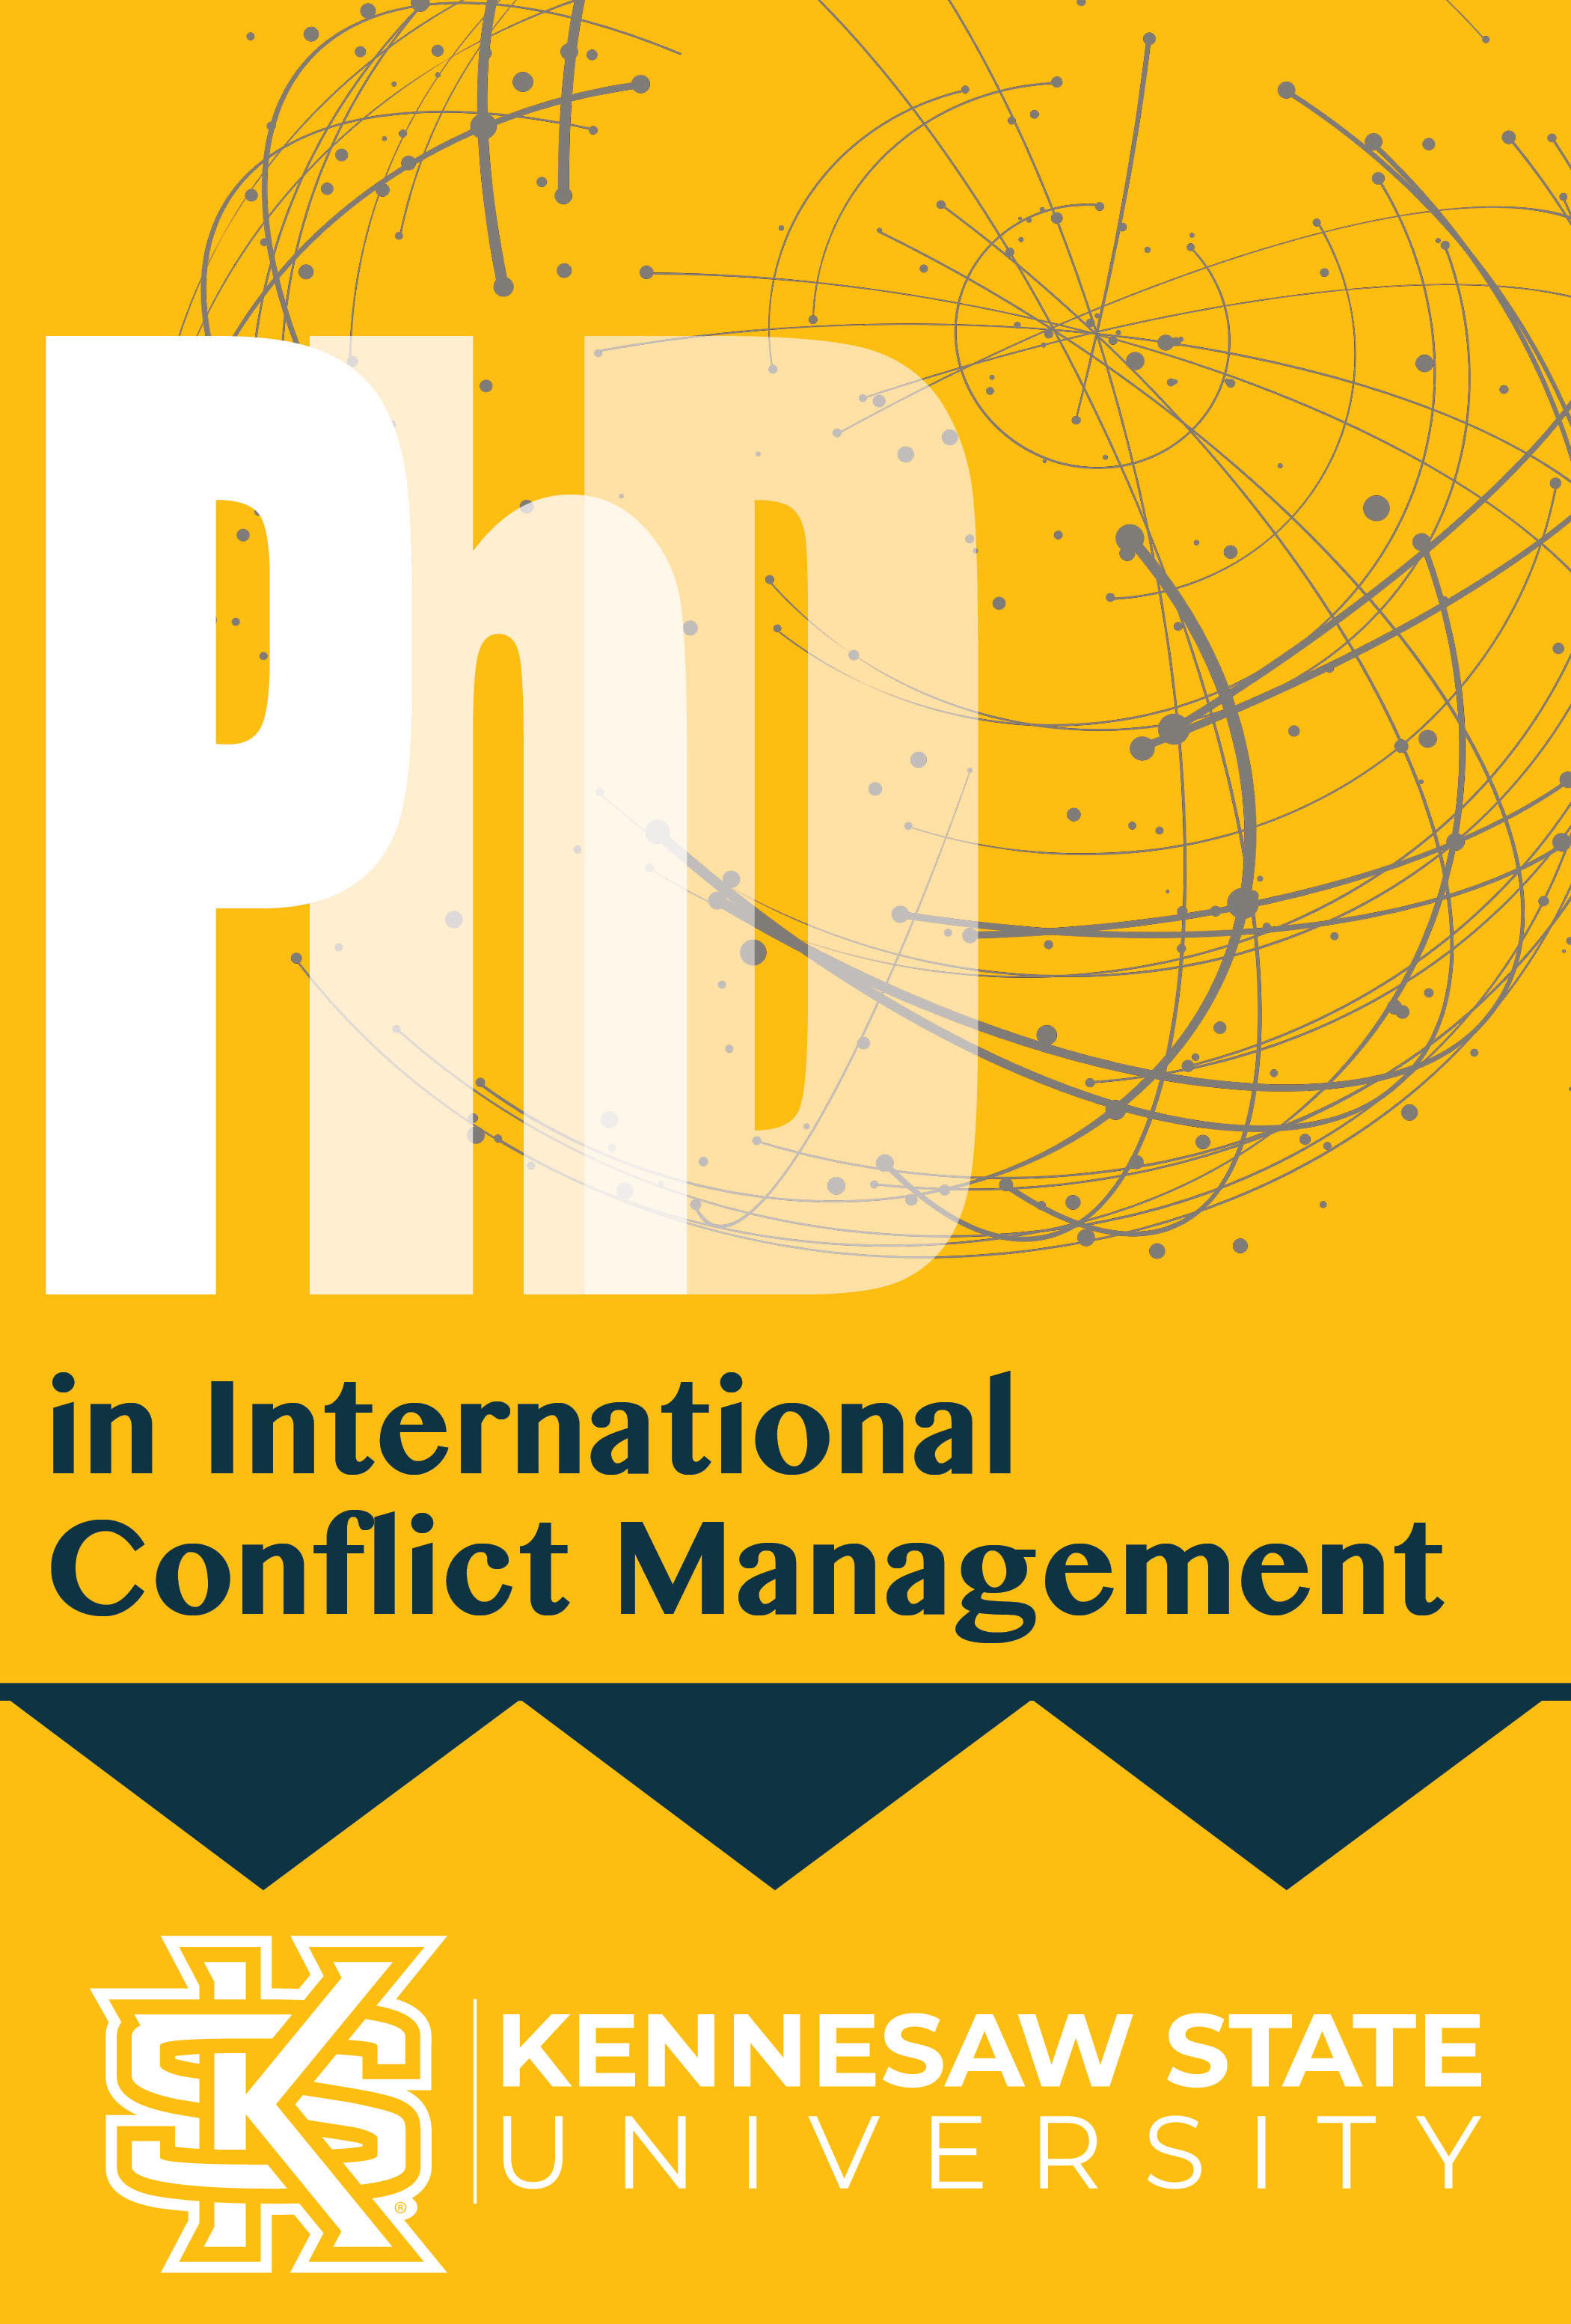 PhD in International Conflict Management at KSU